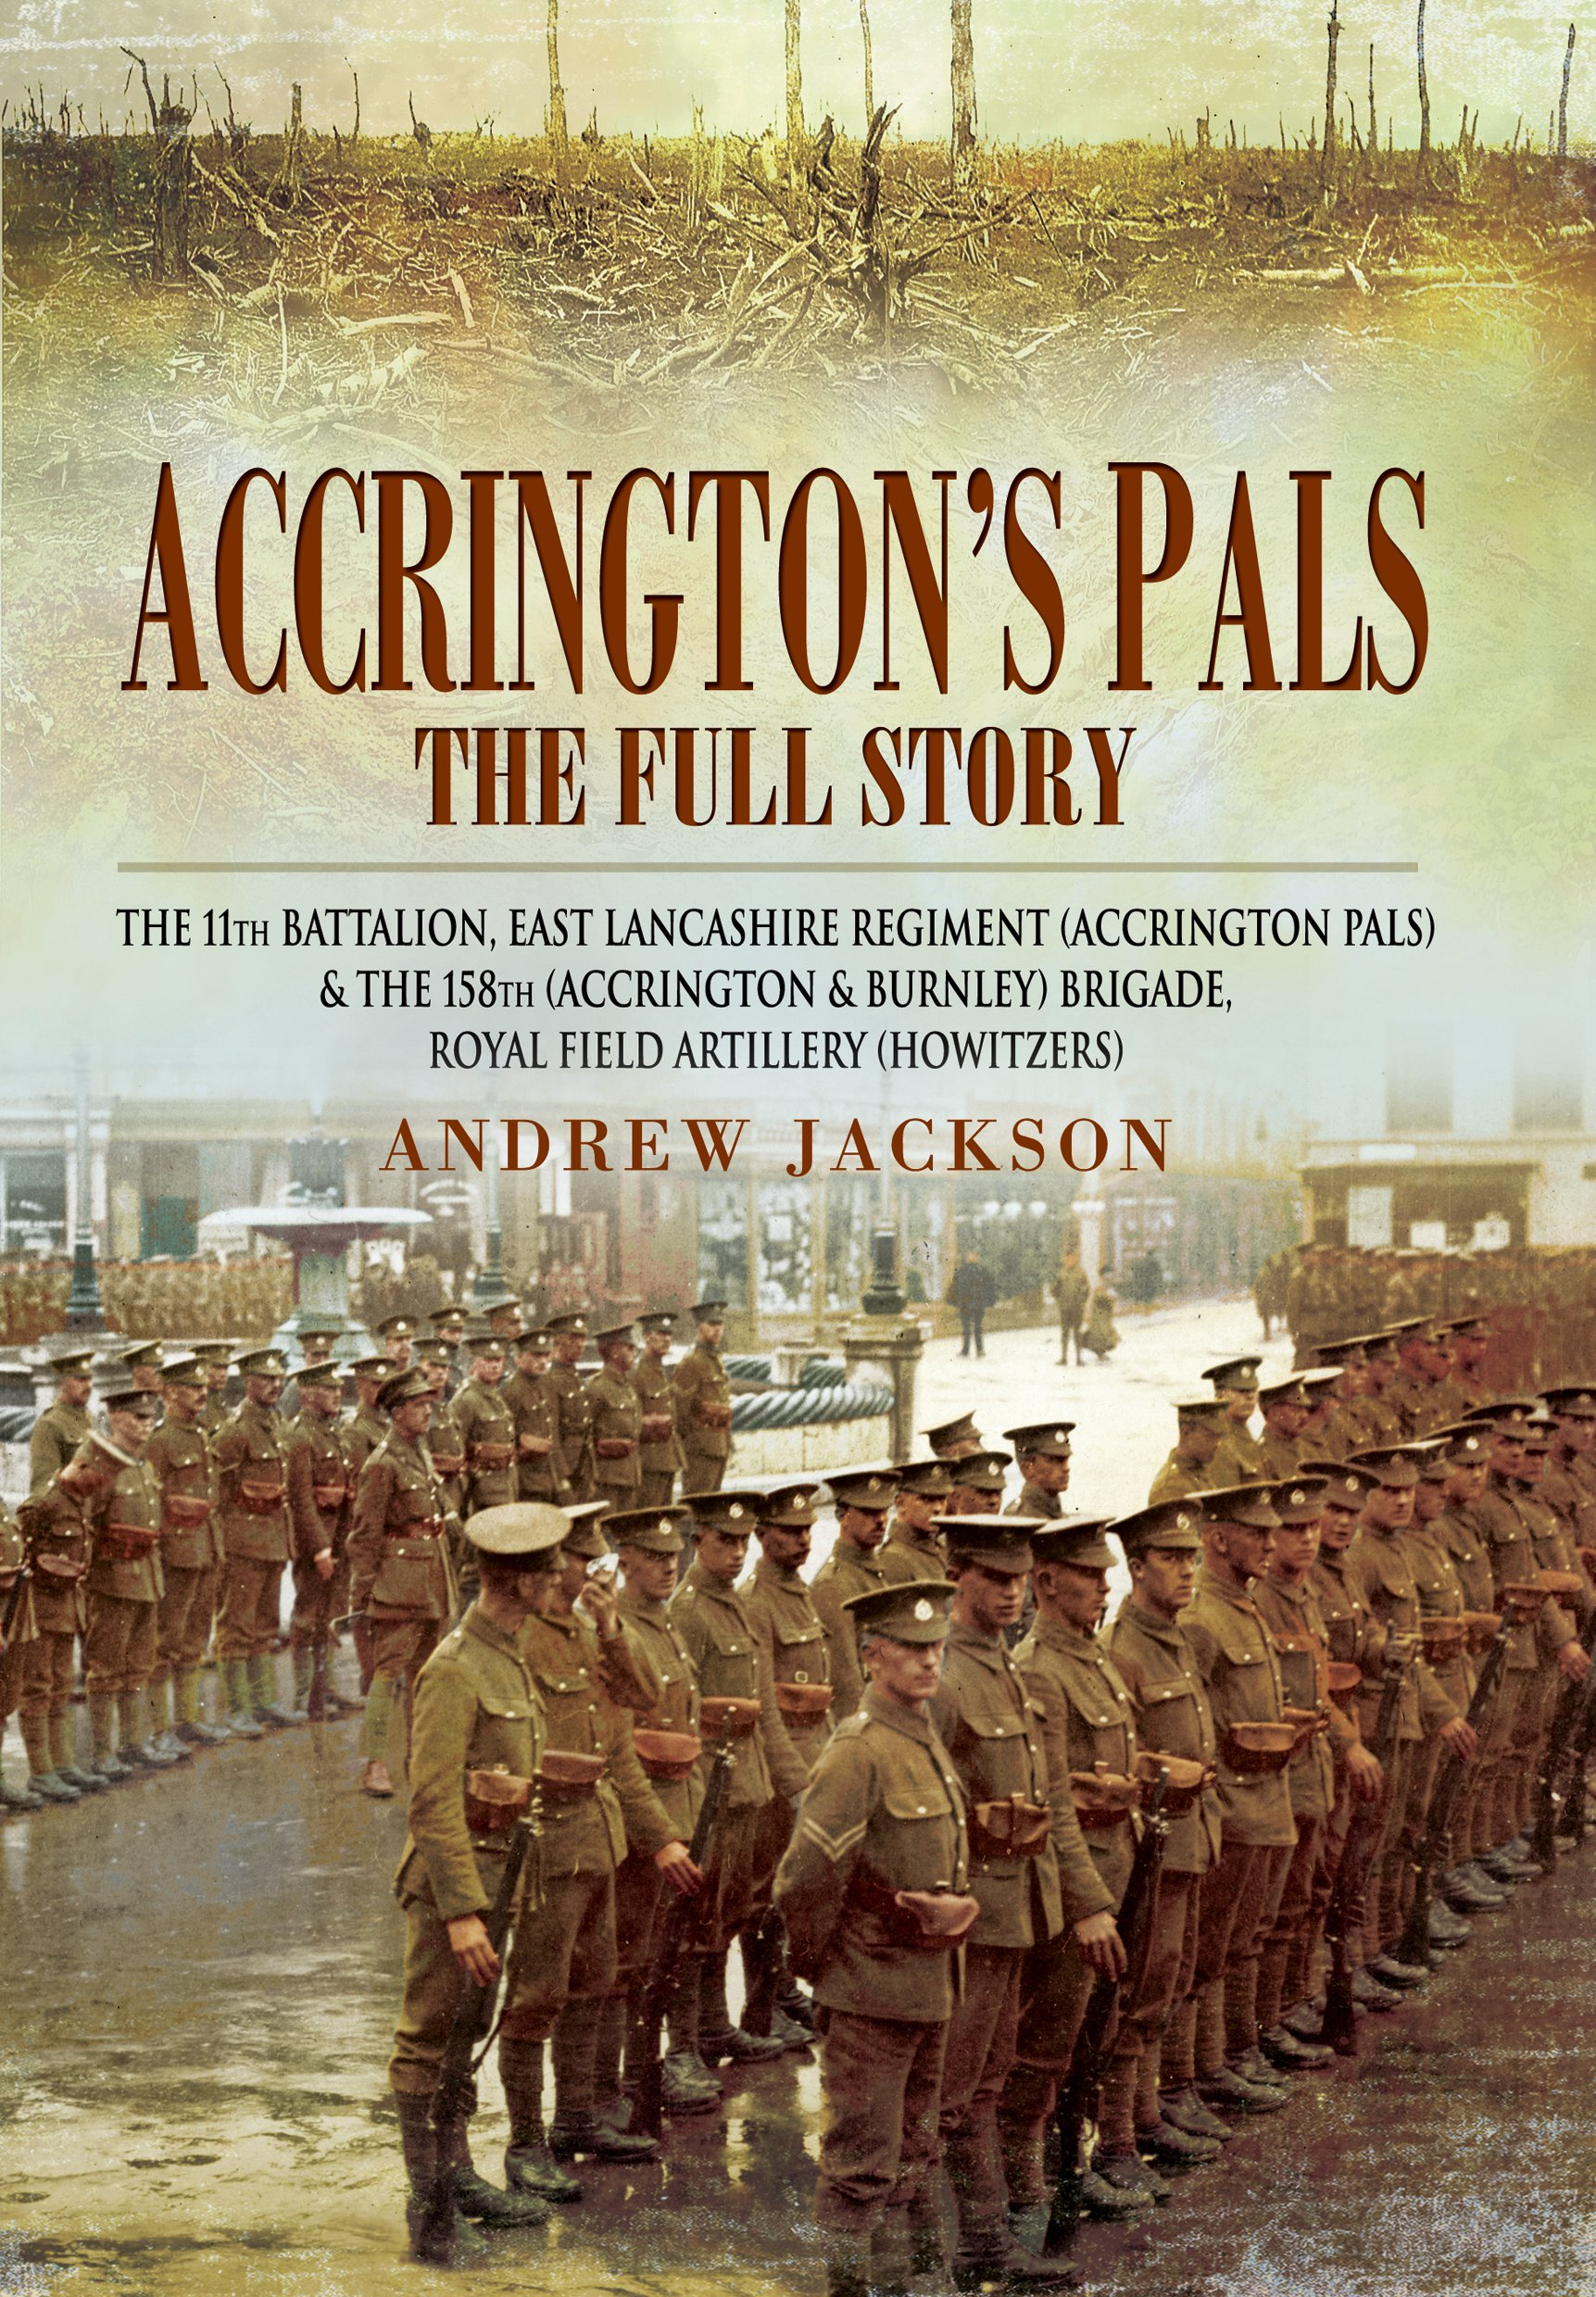 Accrington's Pals: The Full Story: The 11th Battalion, East Lancashire Regiment and the 158th Brigade, Royal Field Artillery